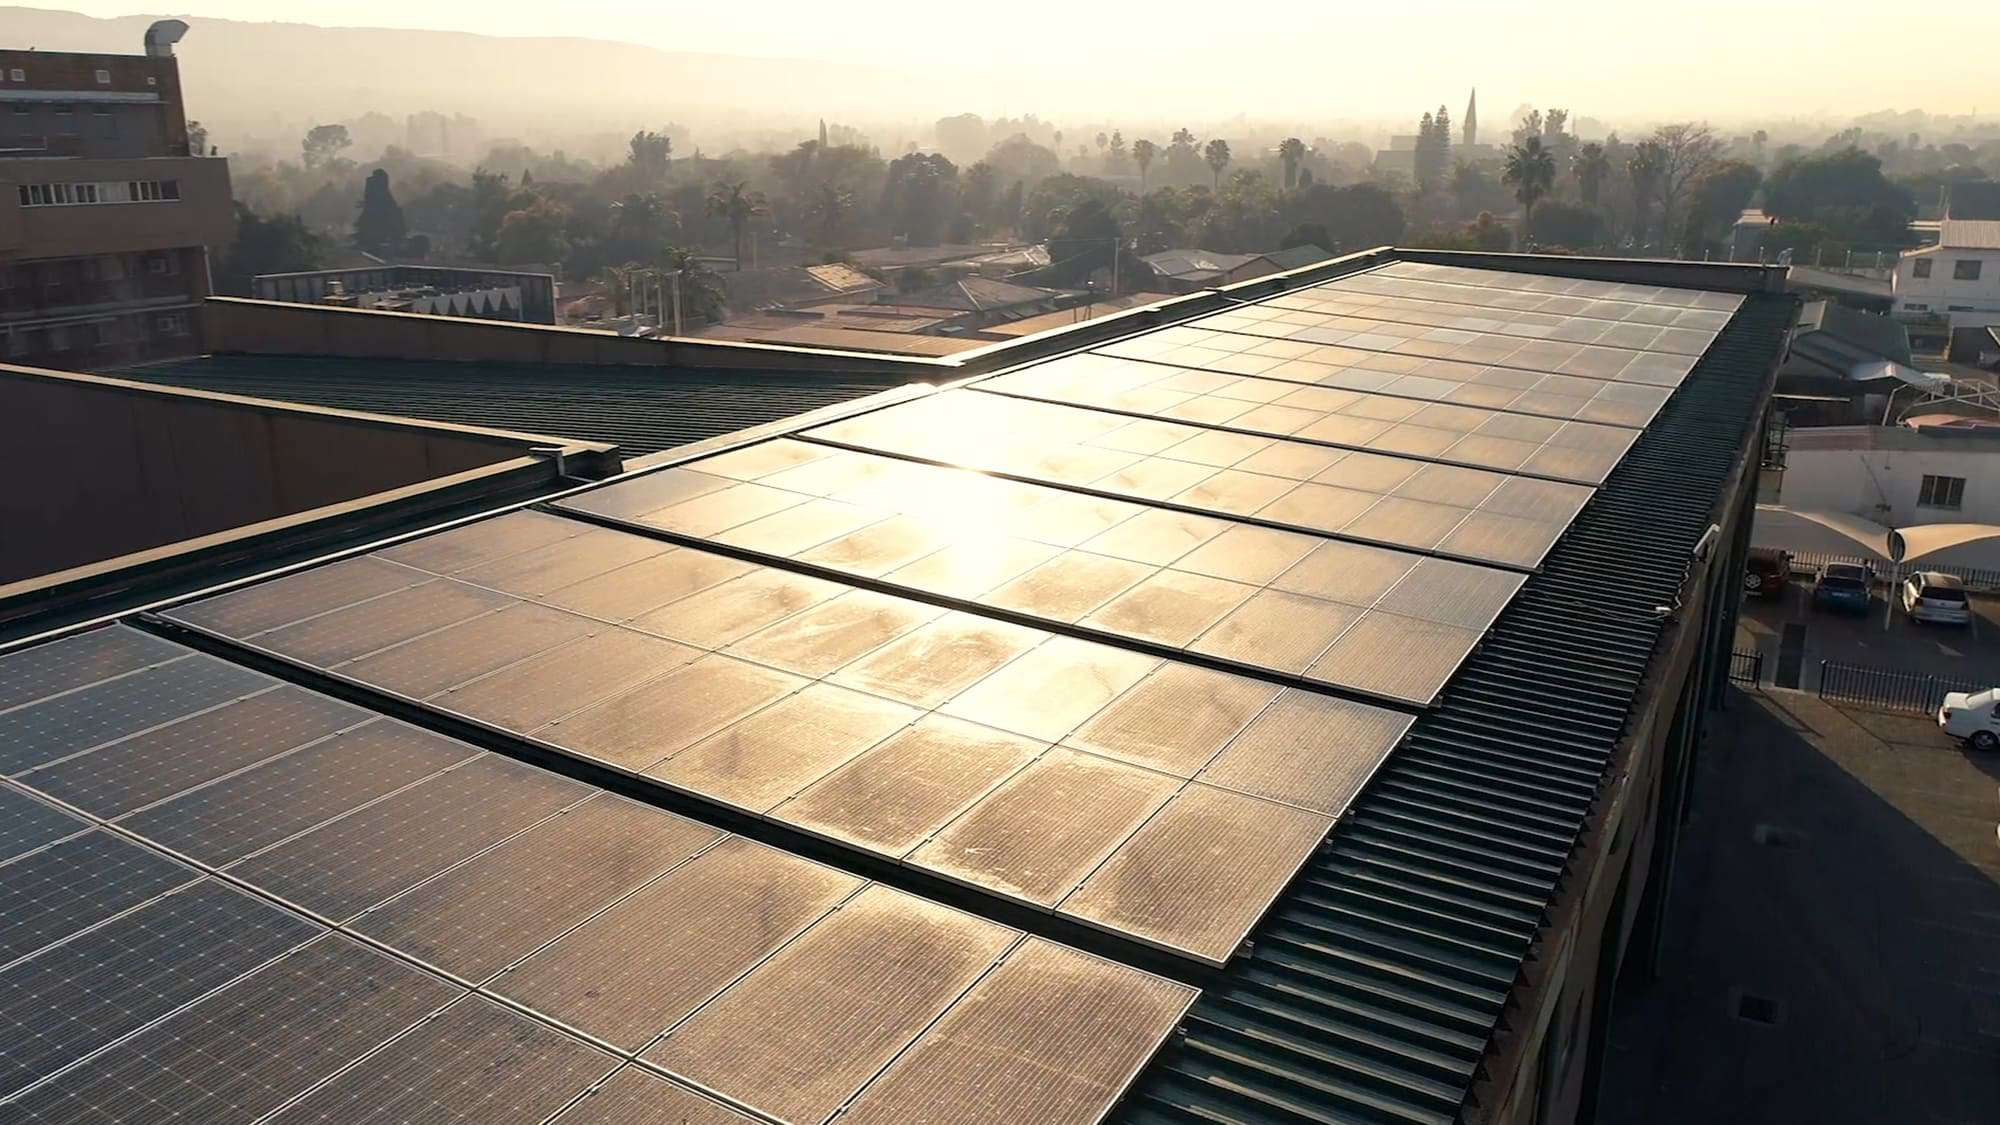 solar panels on a rooftop